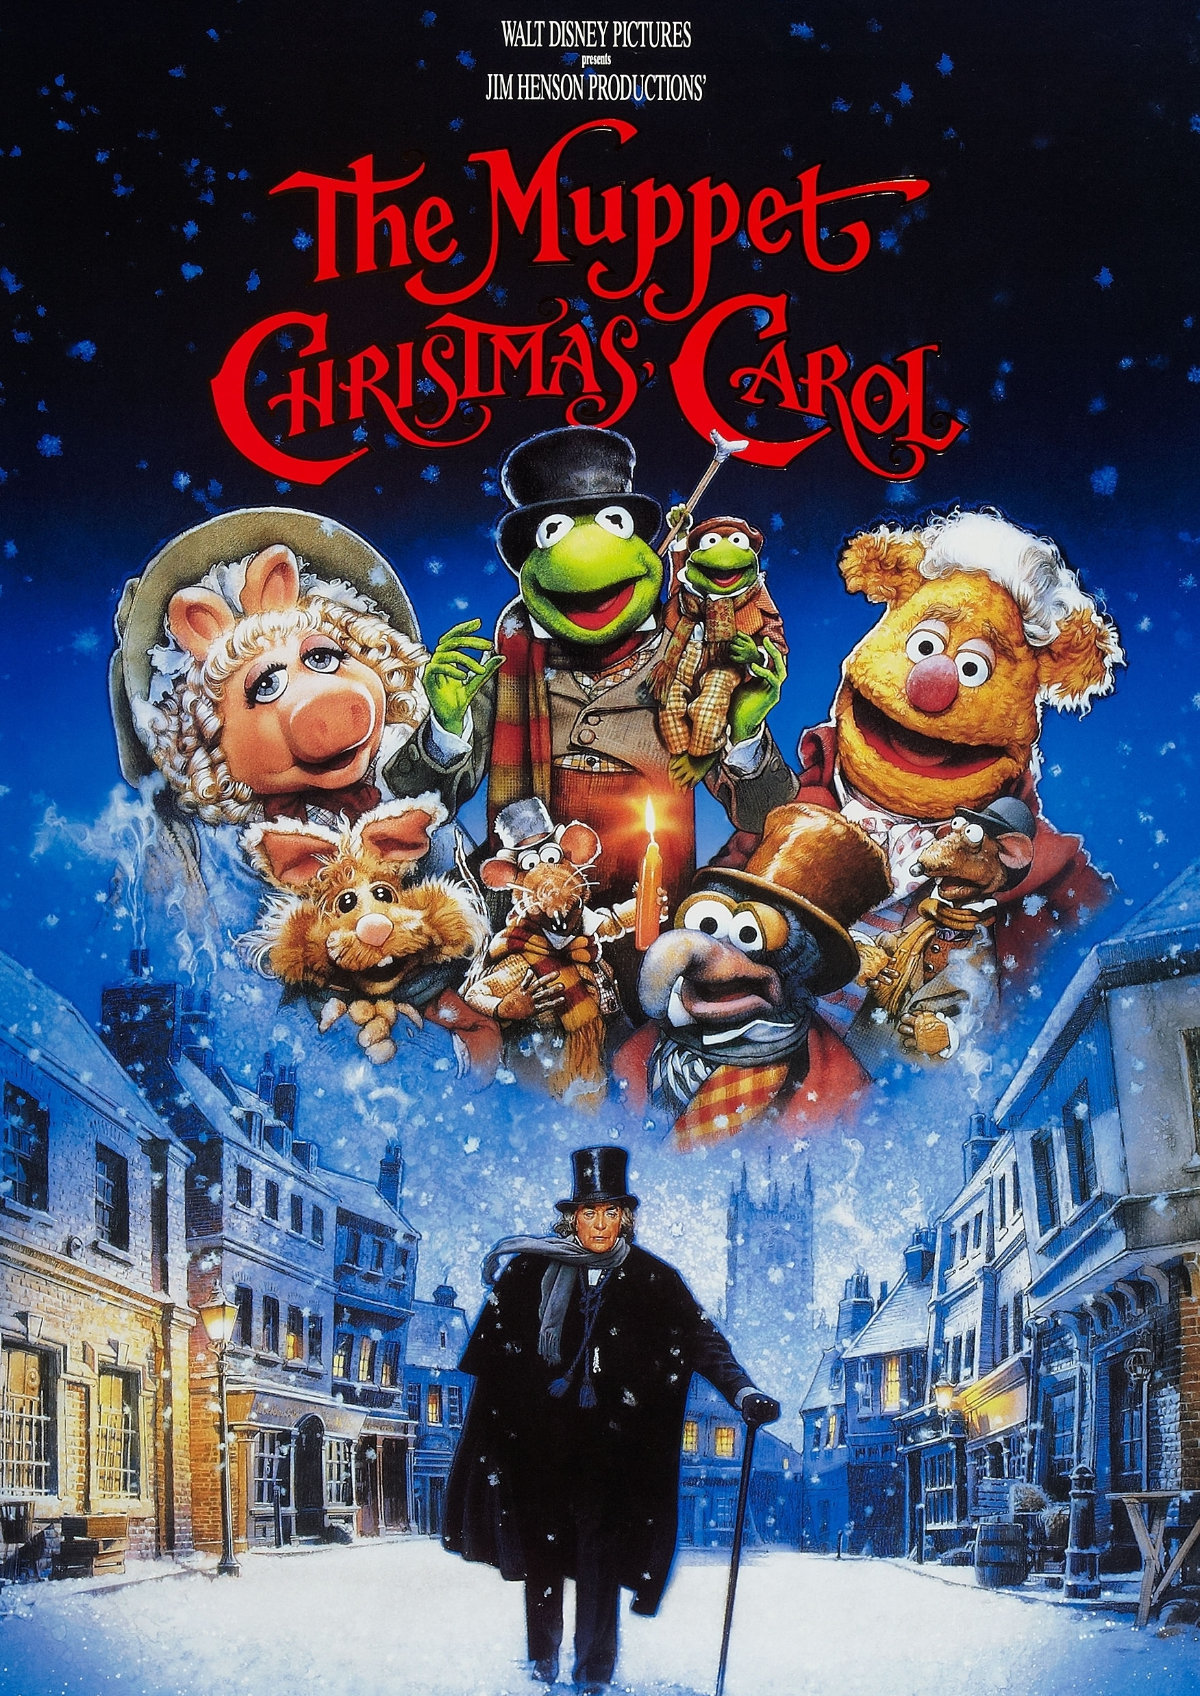 Poster for 'The Muppet Christmas Carol'